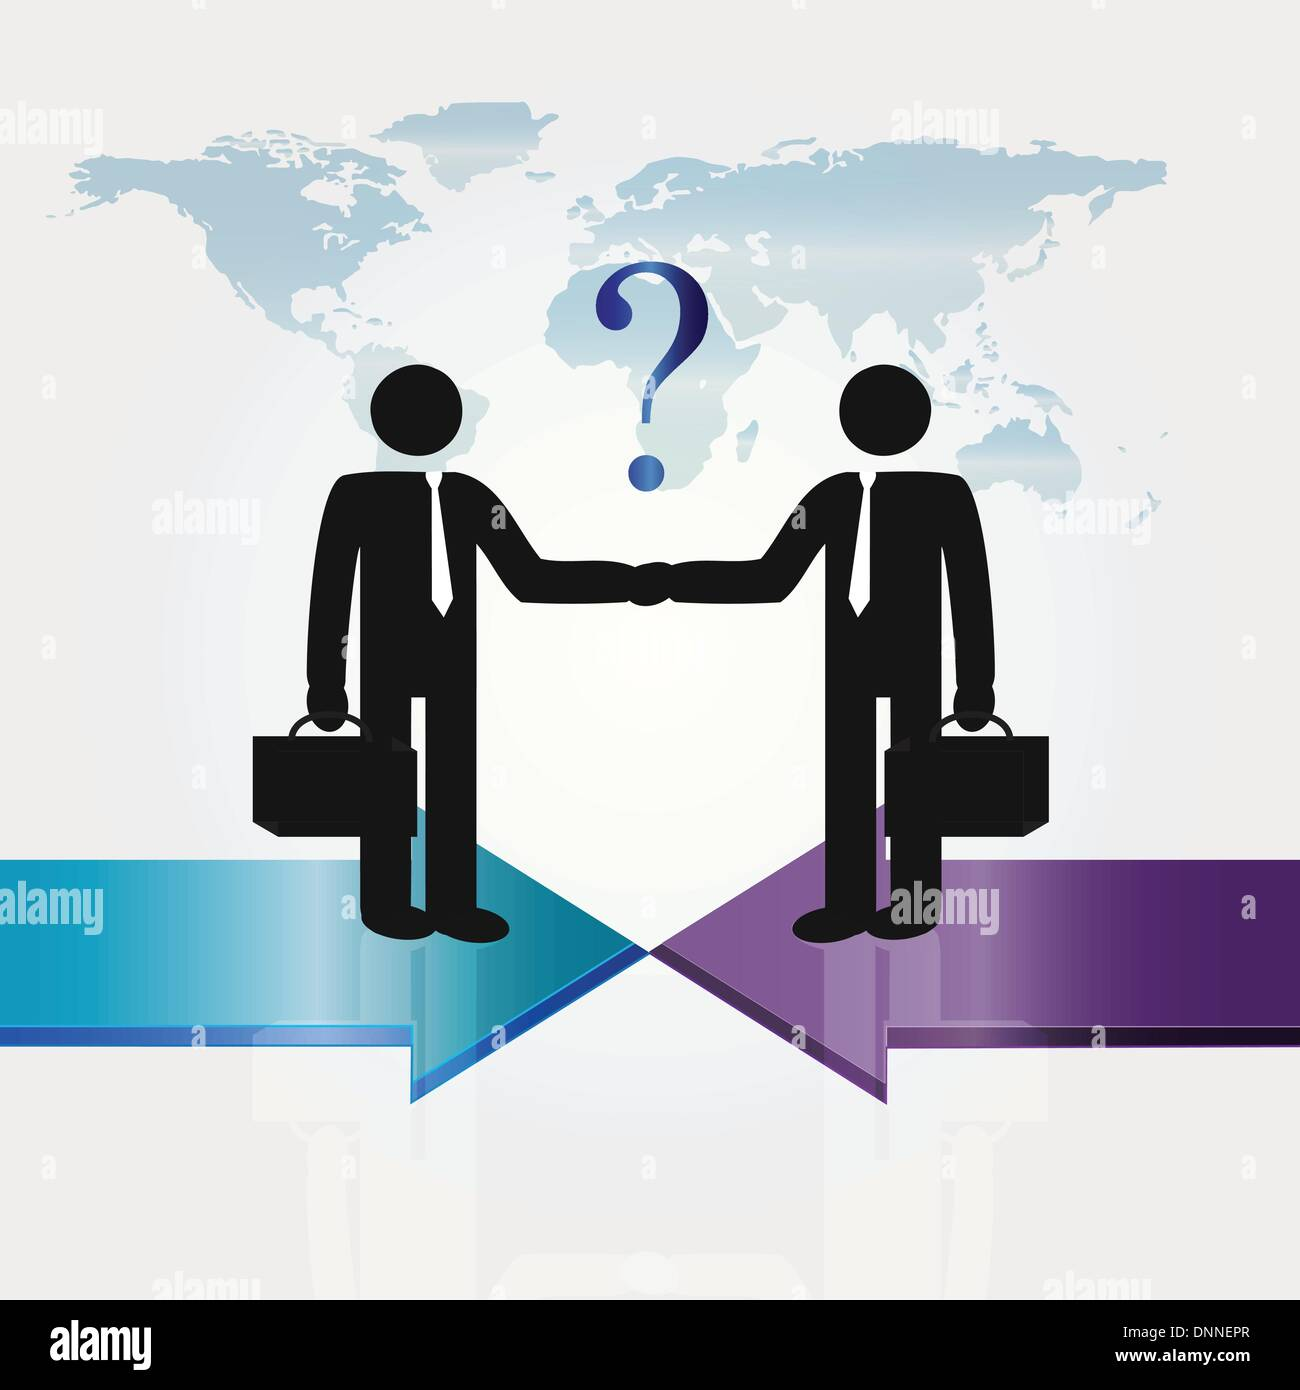 Business meeting two important persons - abstarct concept - Stock Vector